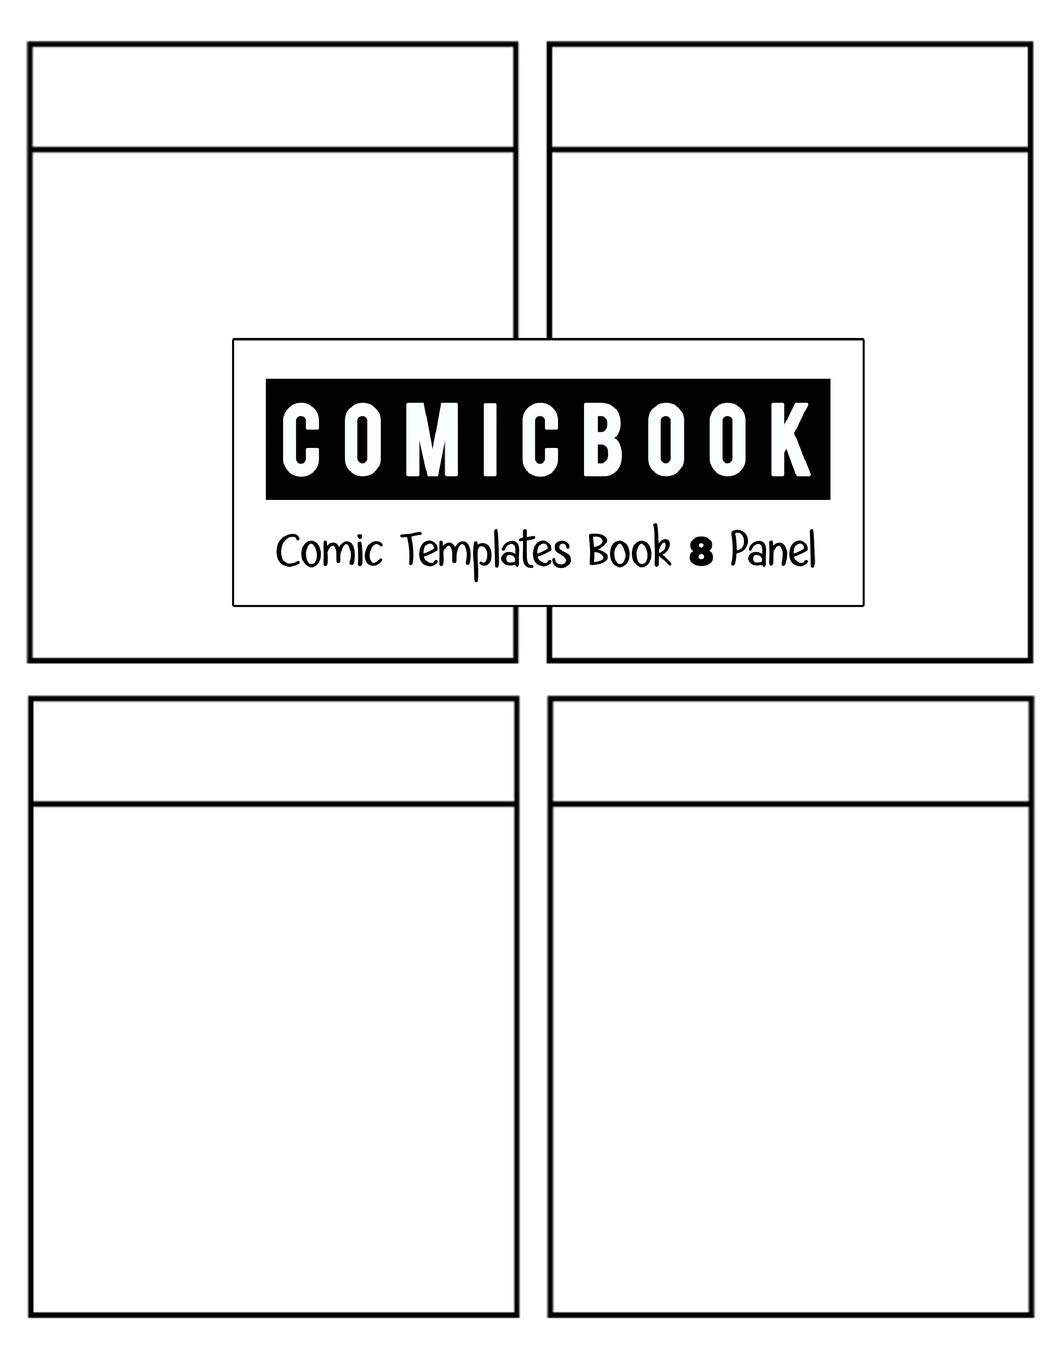 Download Comic Book 8 Panel: Templates Comic Blank Book Panel Strip, Comic Book Drawing, Design Sketchbook Journal, Artist's Notebook, Strips Cartoon, Draw Your Own Comics, White Cover, Size 8.5 x 11 Inch PDF